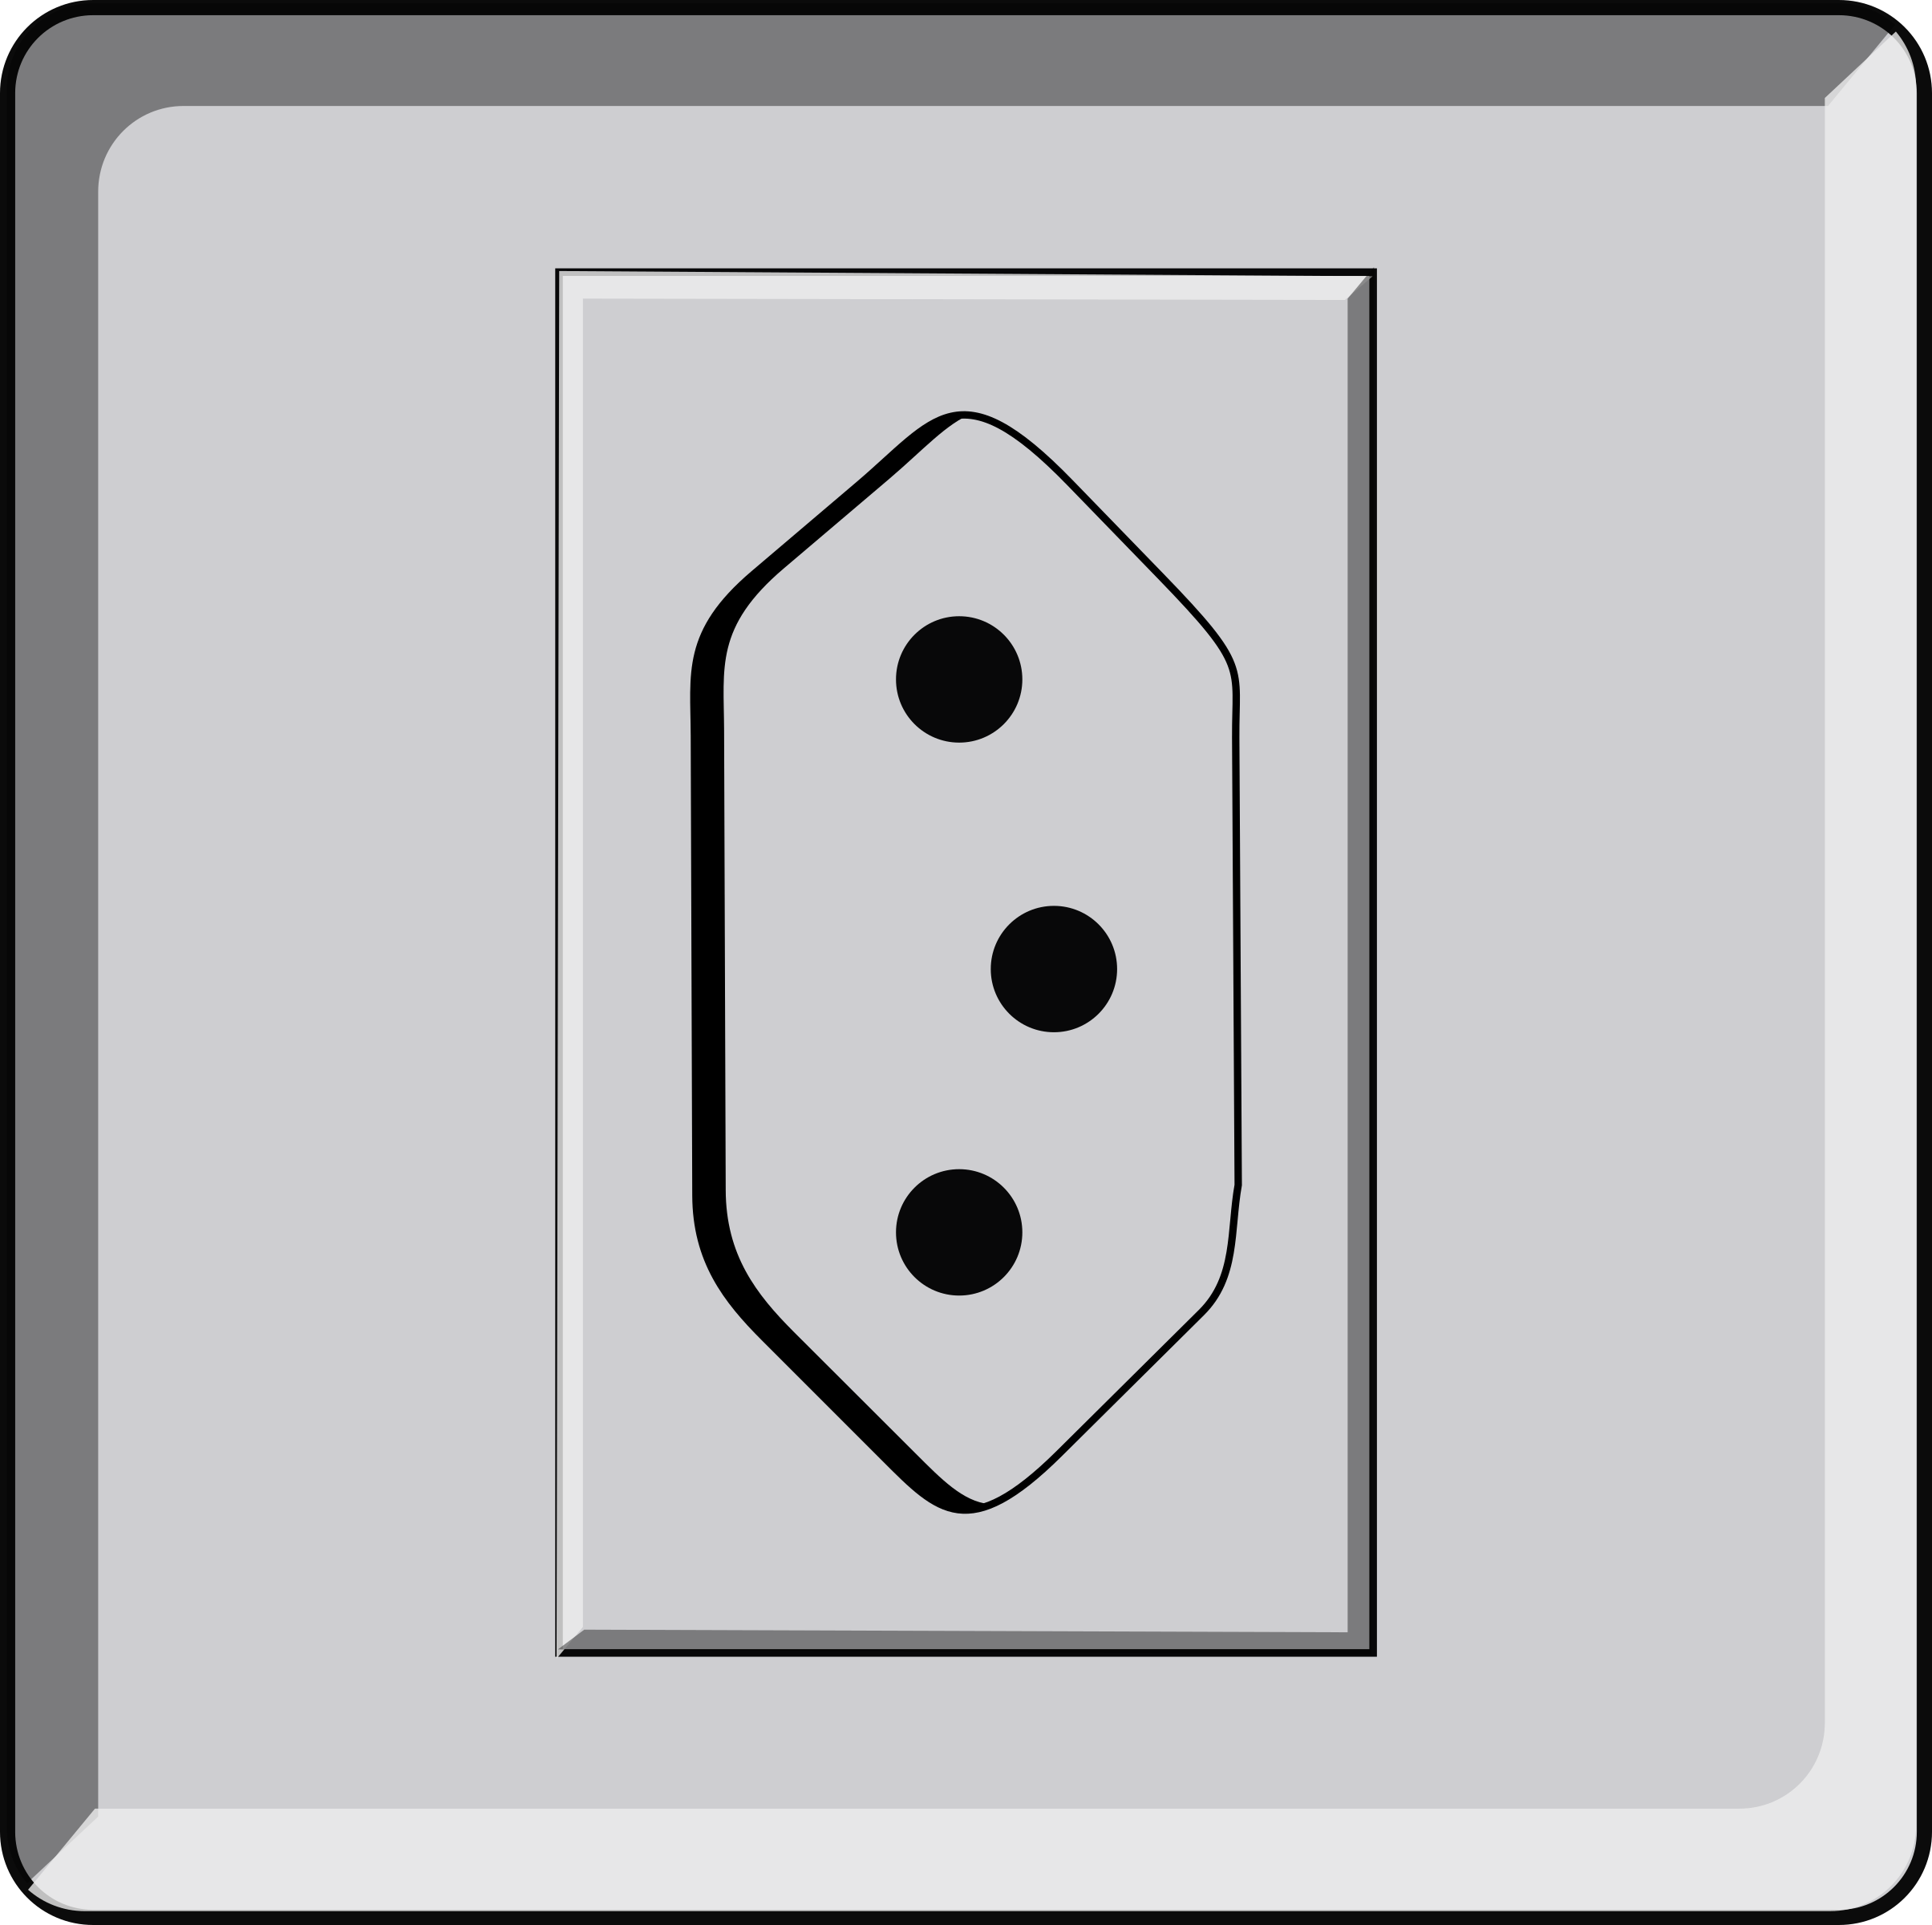 Plug clipart extension. Tomada abnt wall socket